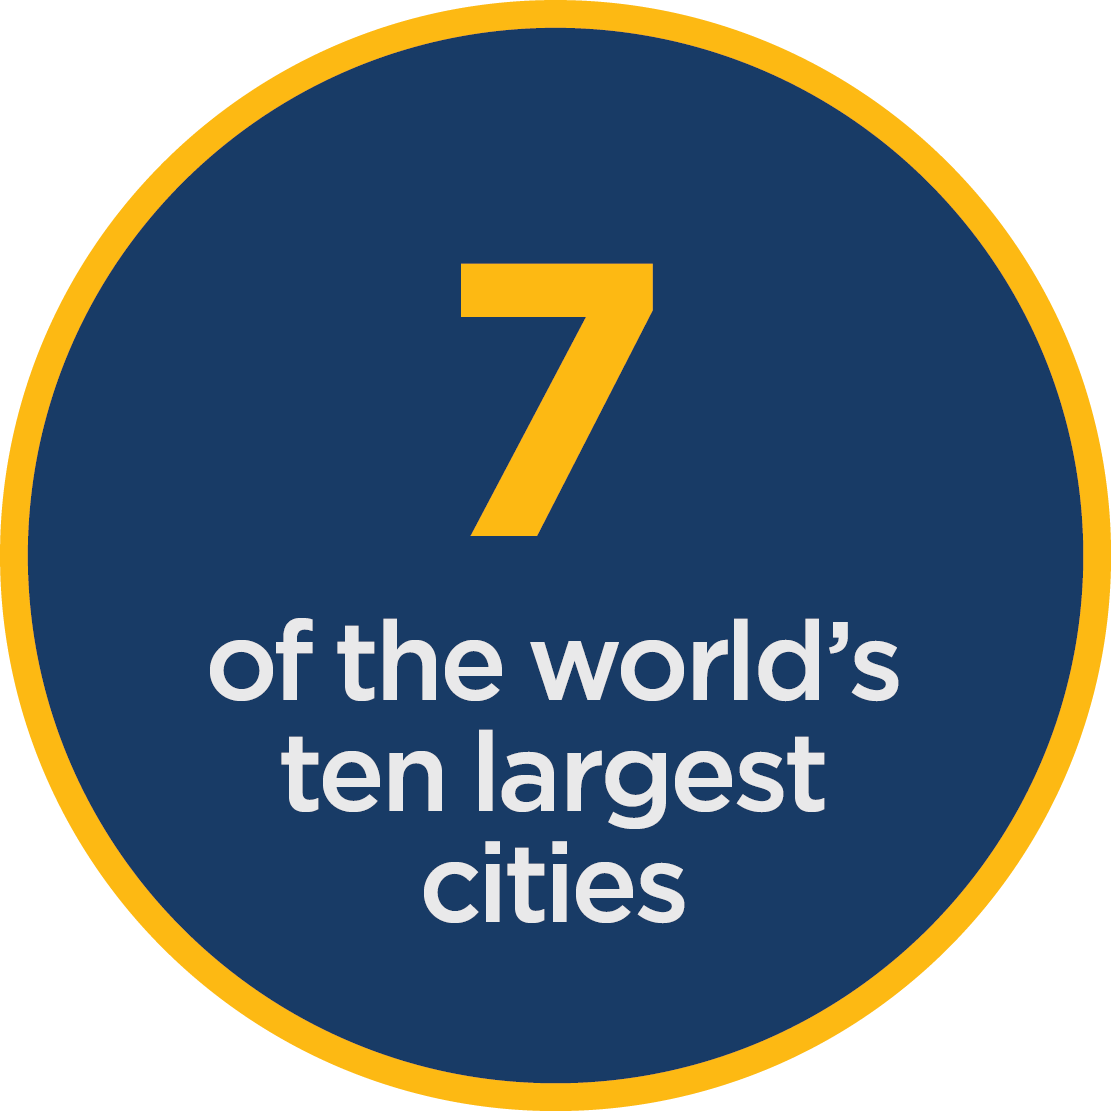 7% of the world's ten largest cities